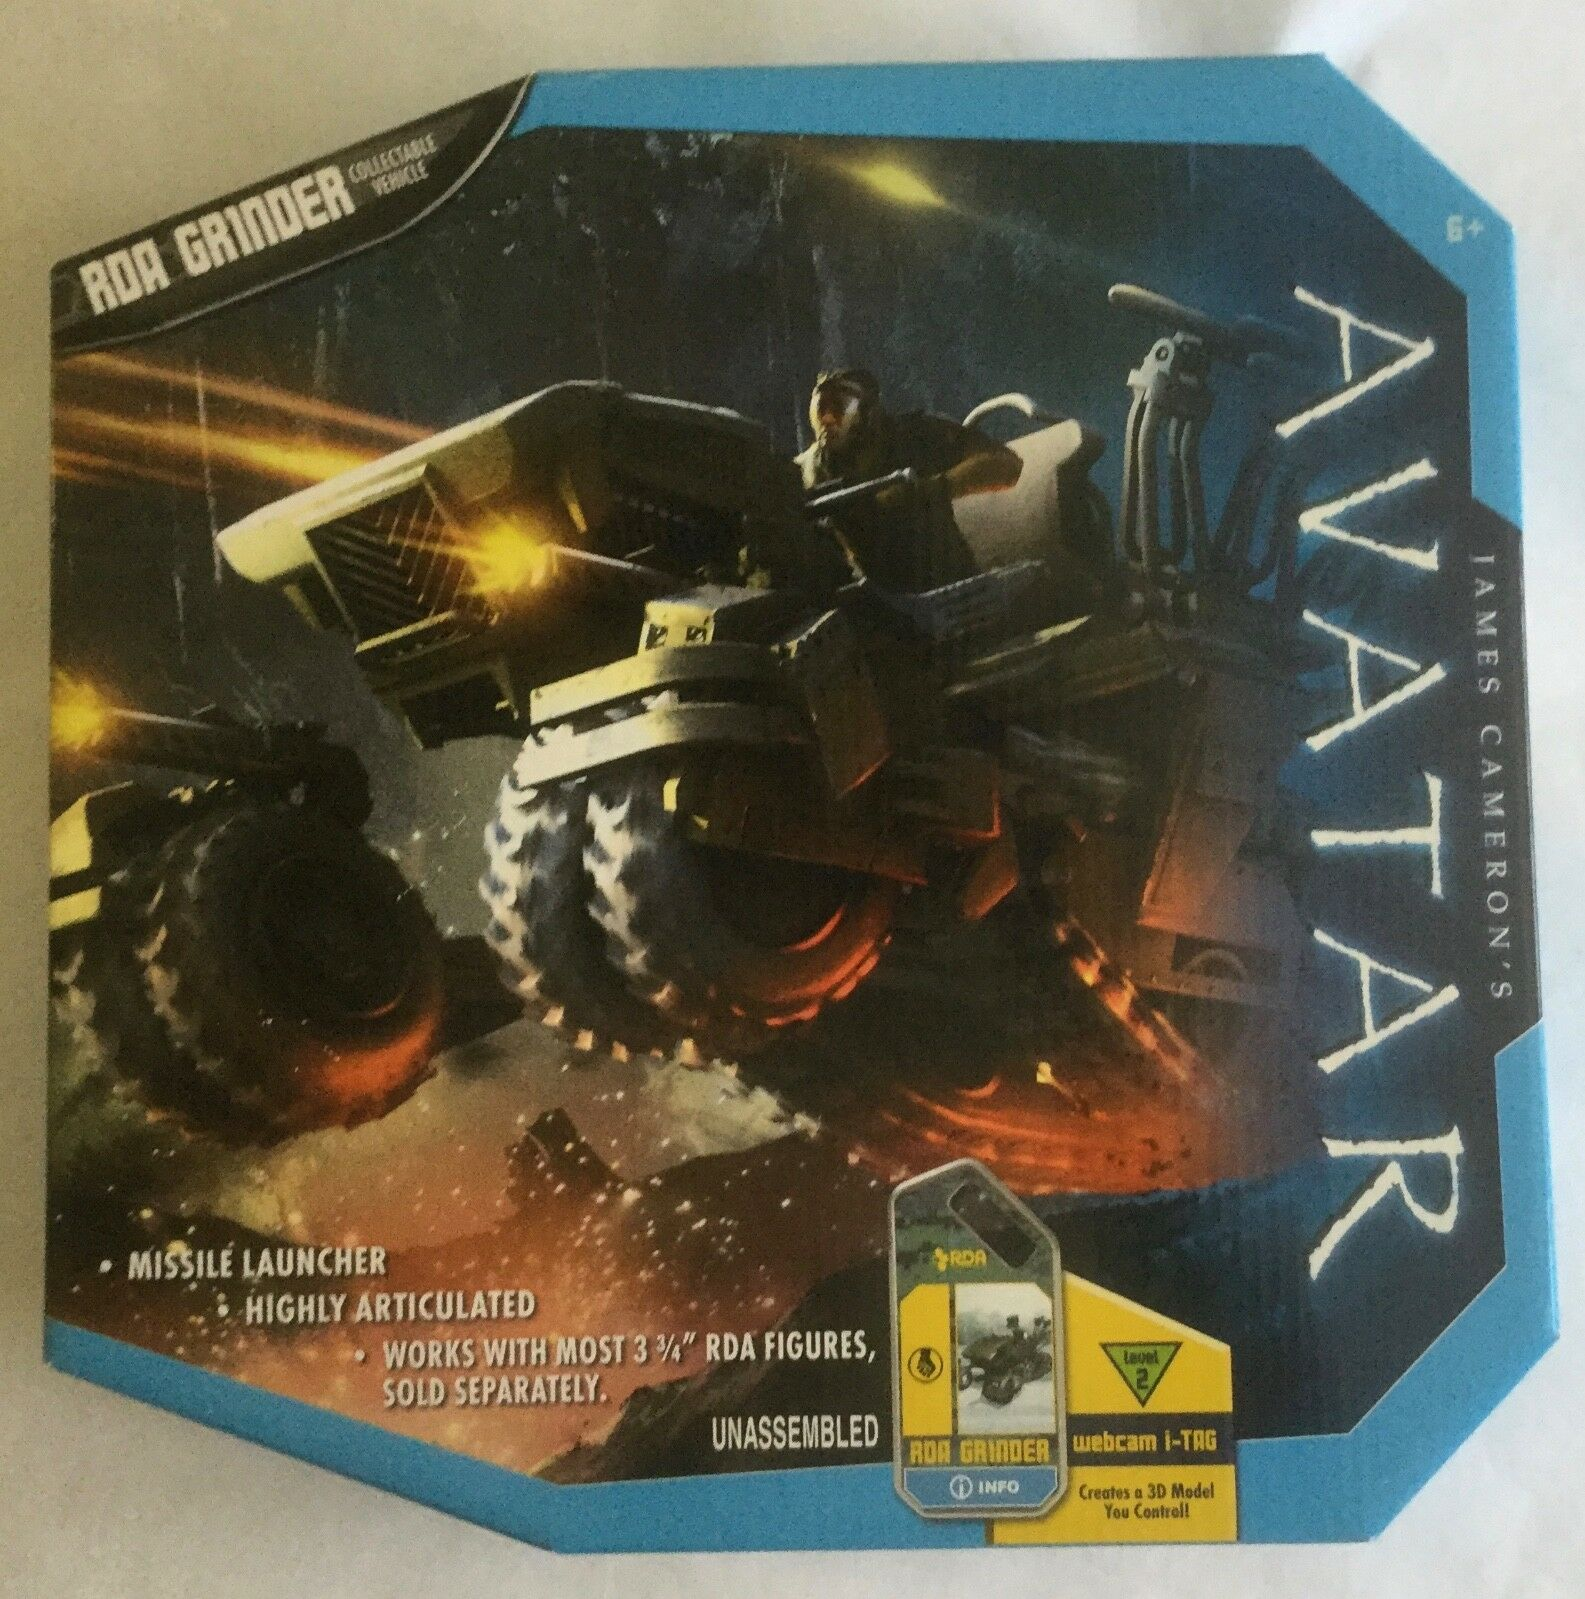 RDA GRINDER AVATAR MISB James Cameron's 4 inch vehicle for action figures